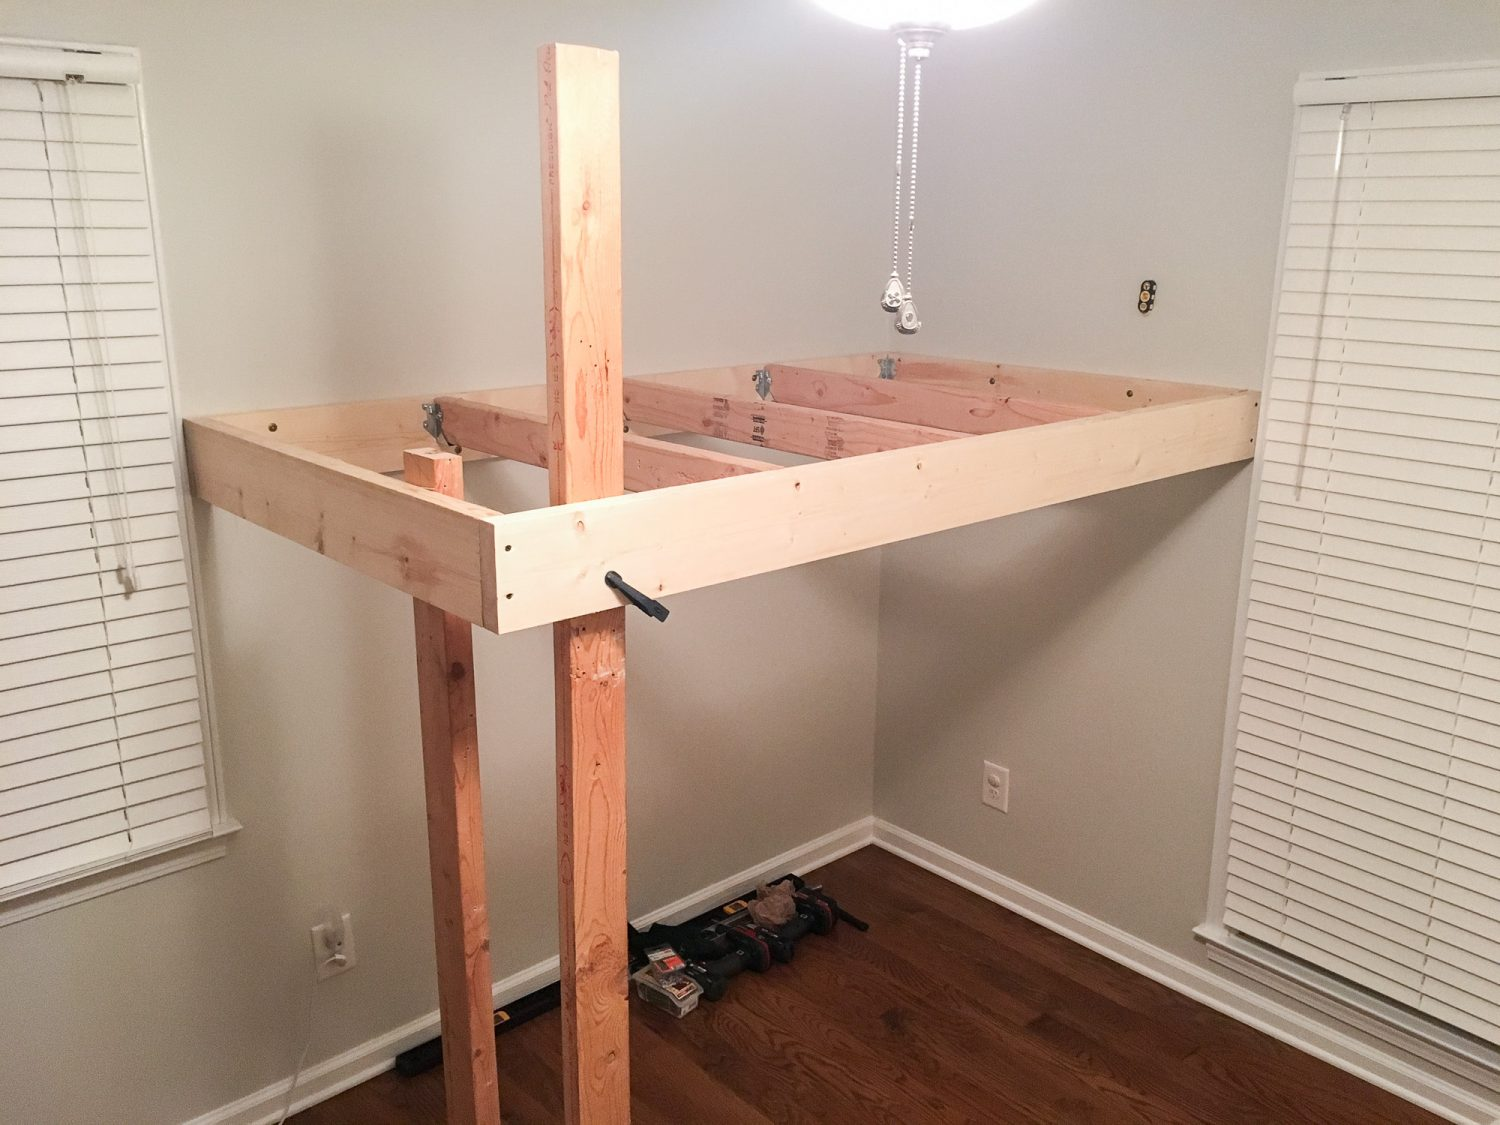 Loft bed for boy's room. The frame.